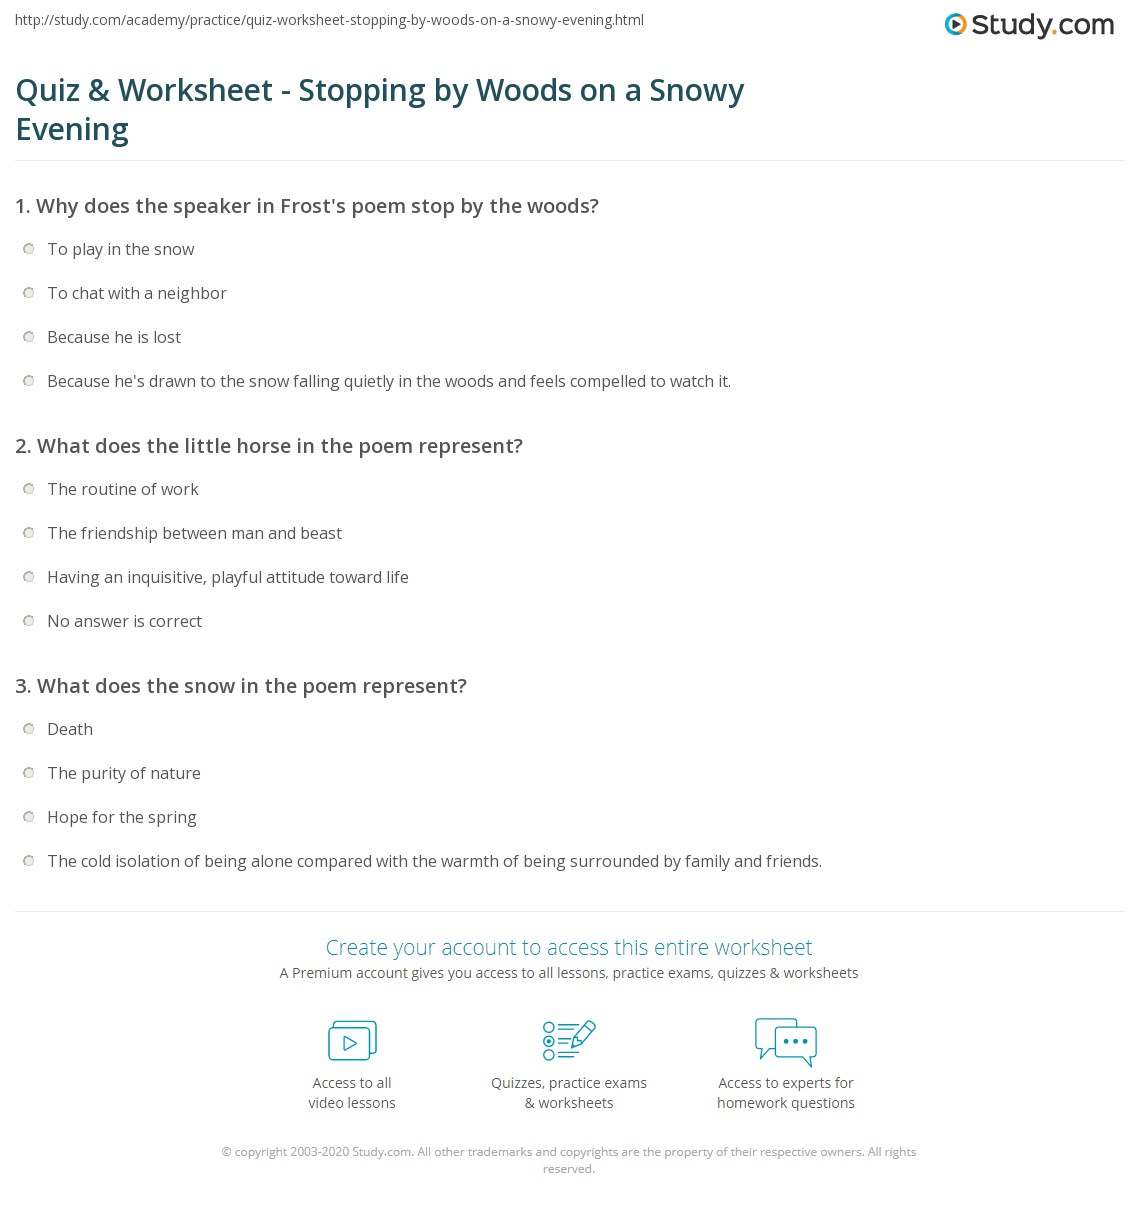 Quiz Worksheet Stopping By Woods On A Snowy Evening Study Com